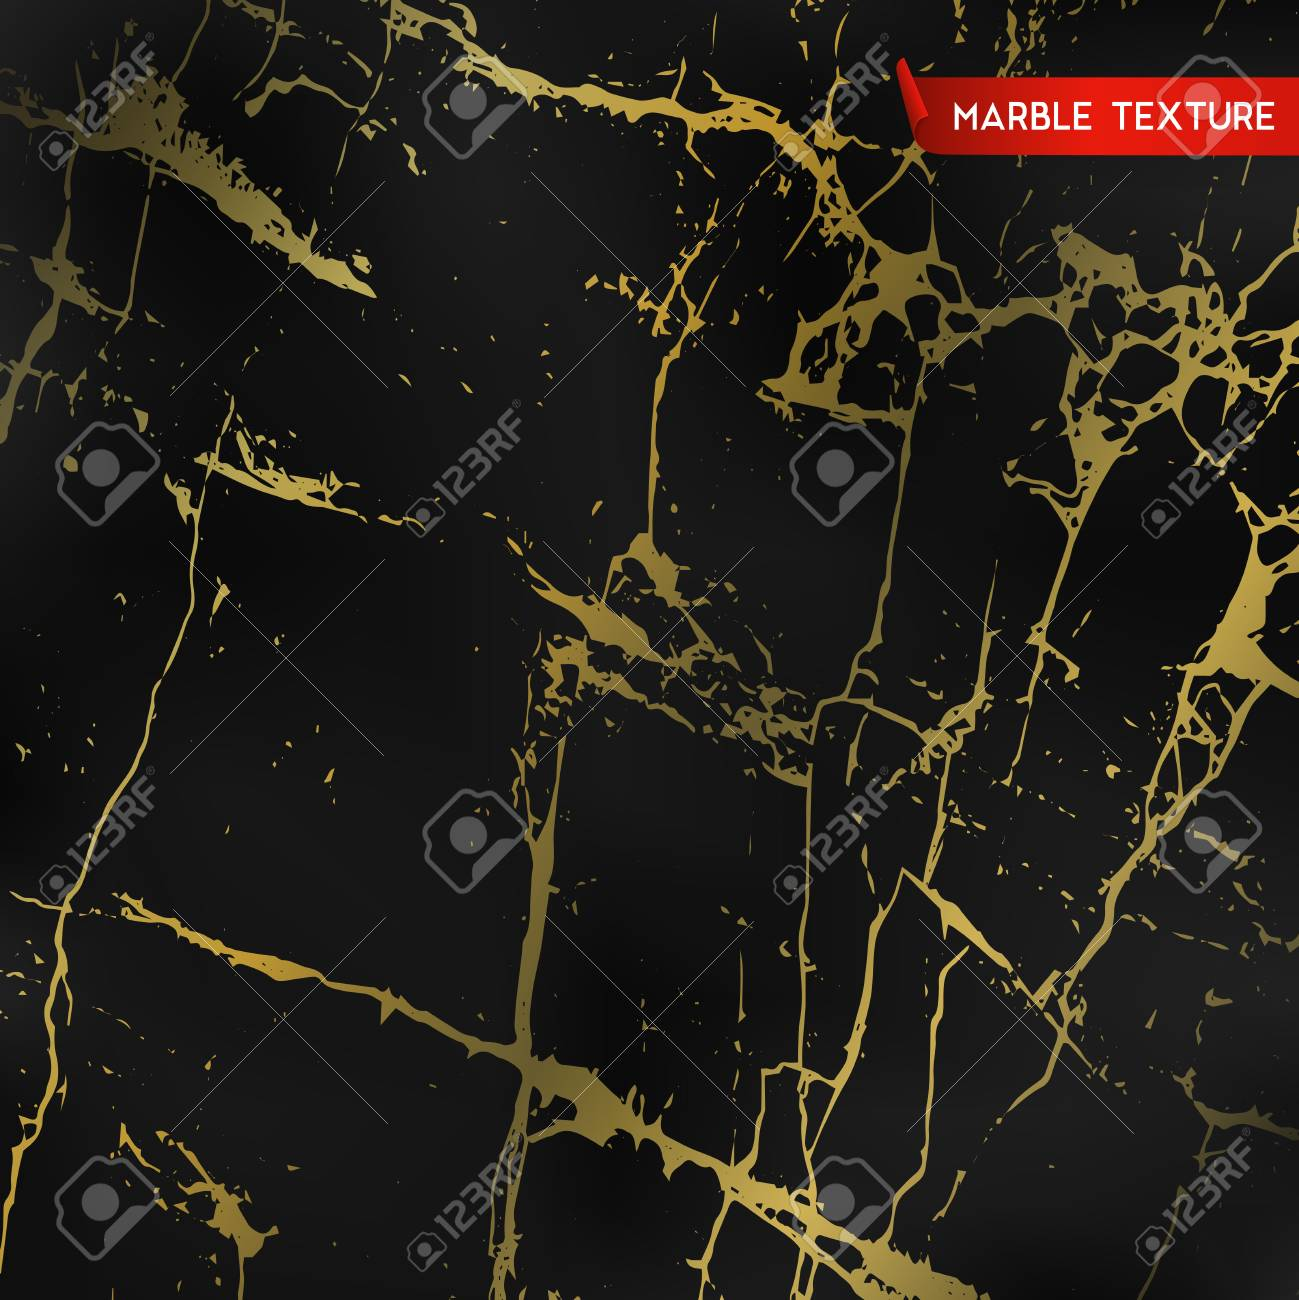 Black marble textures with gold vector background template black marble textures with gold vector background template for wedding invitation banner stopboris Image collections